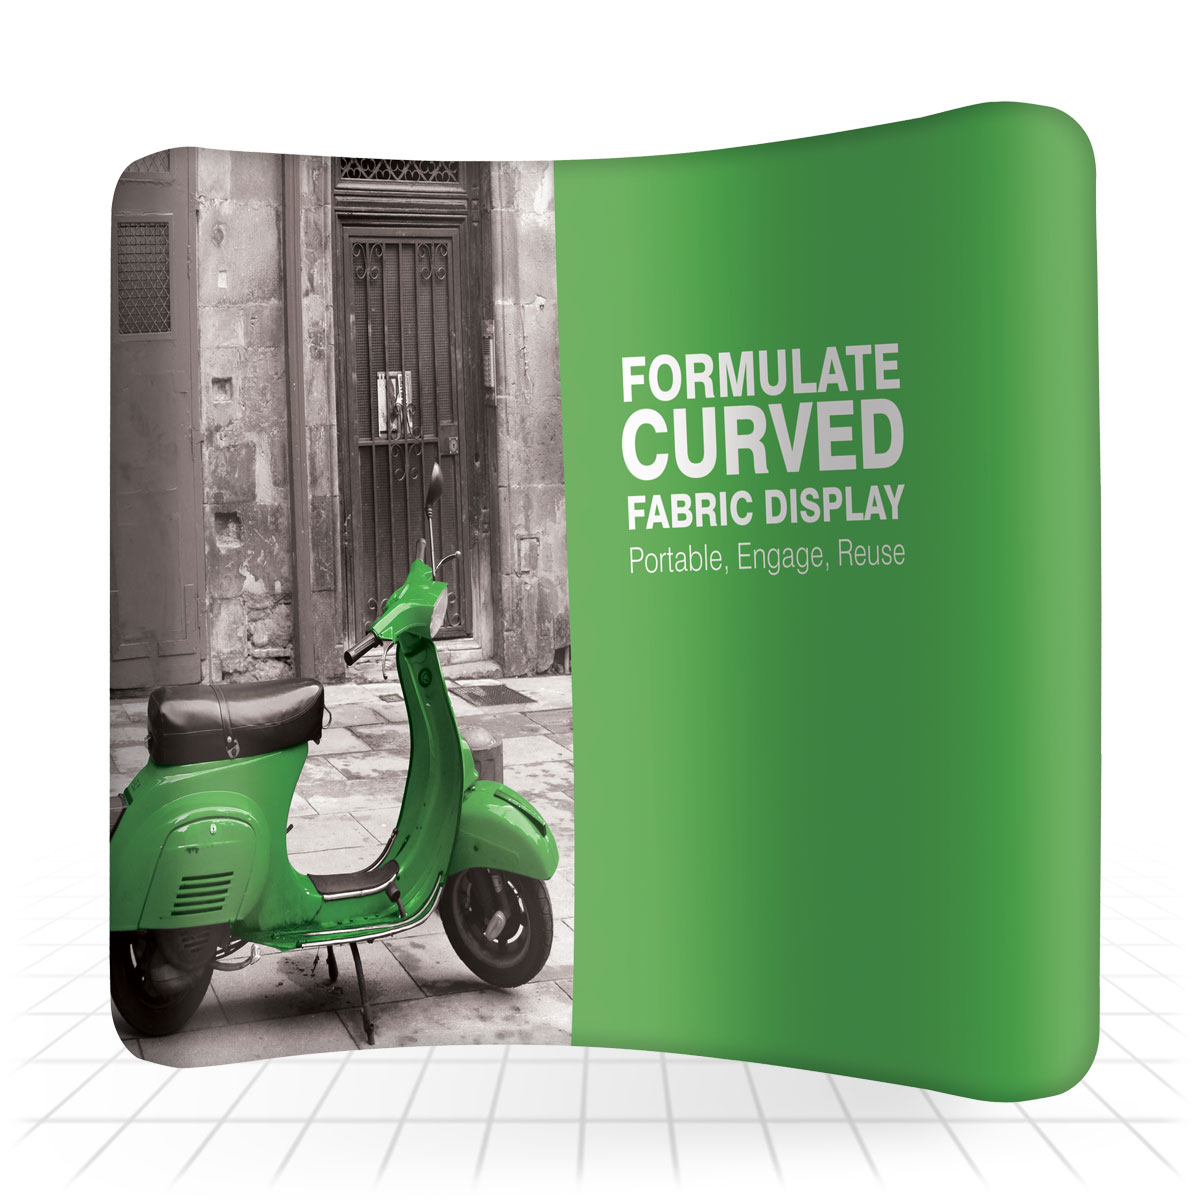 Fabric Exhibition Stand Quotes : Formulate curved walls